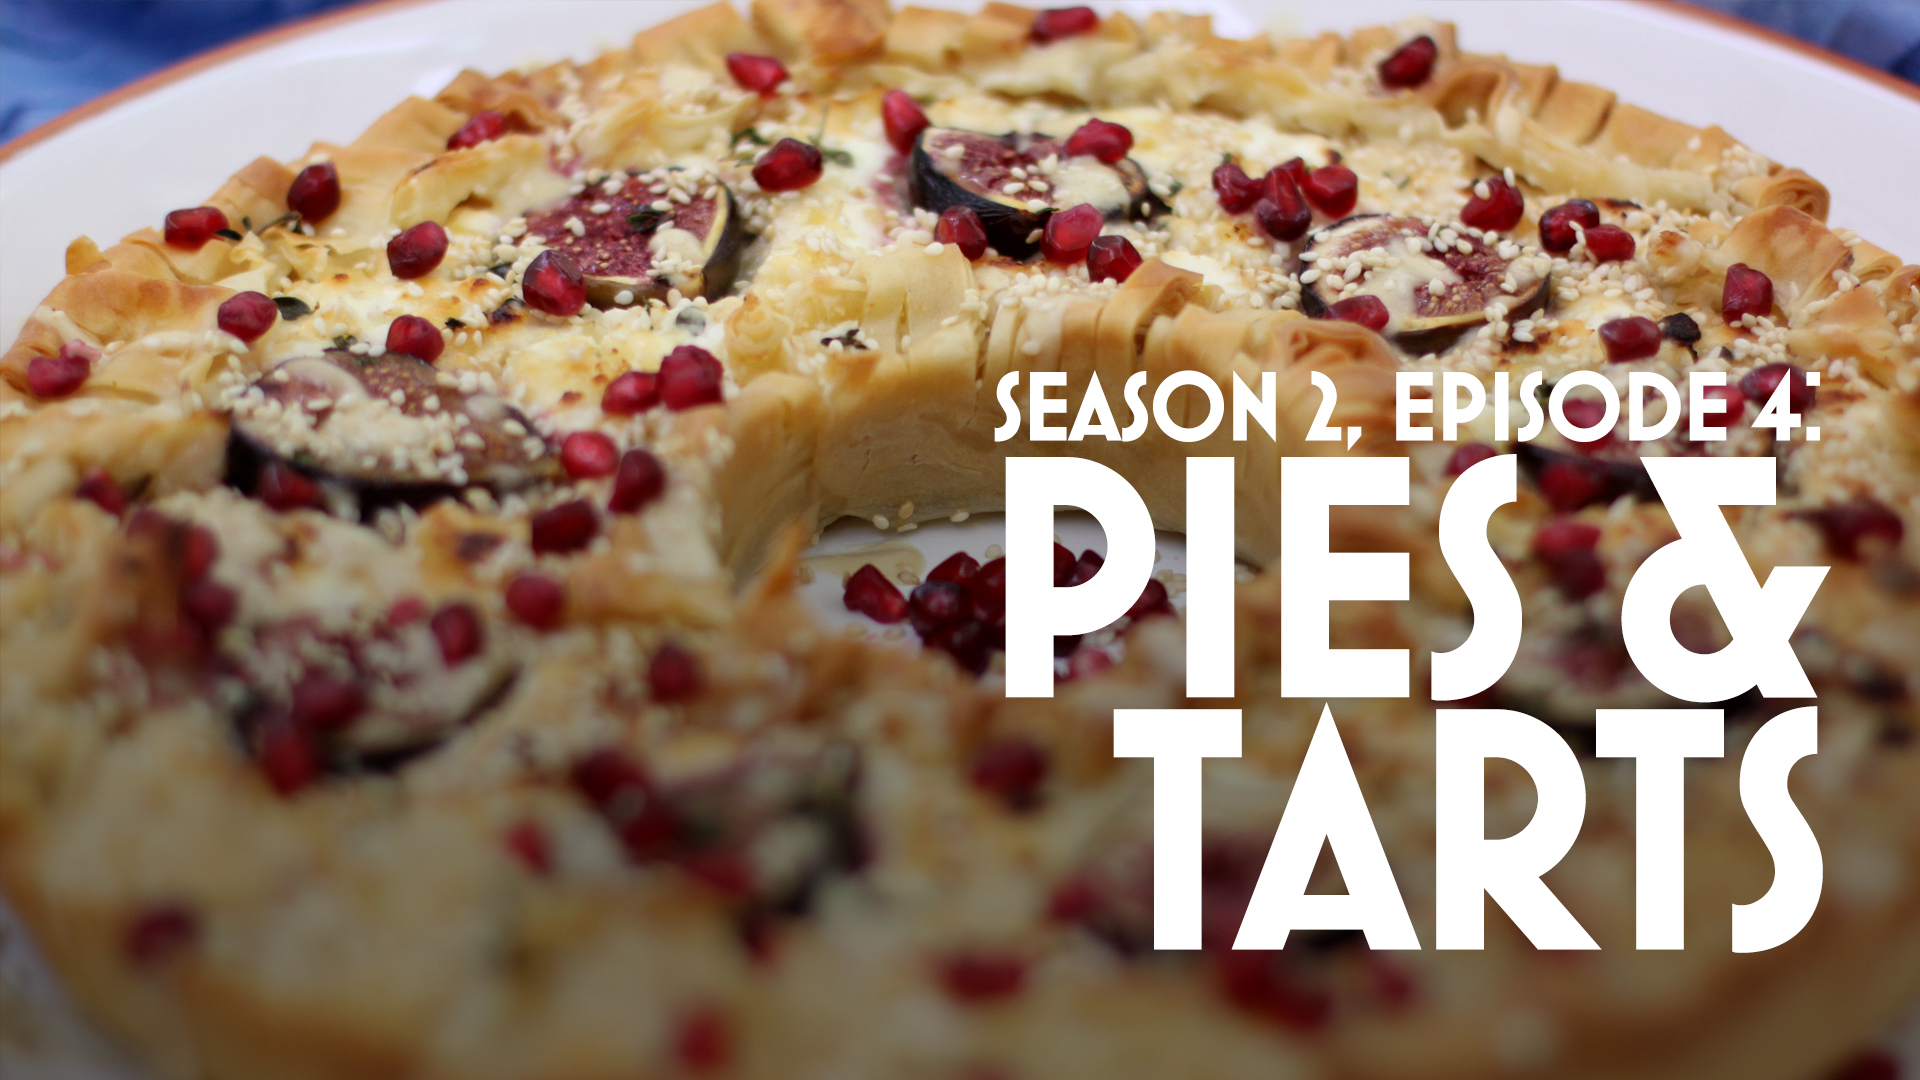 Episode 4: Pies & Tarts